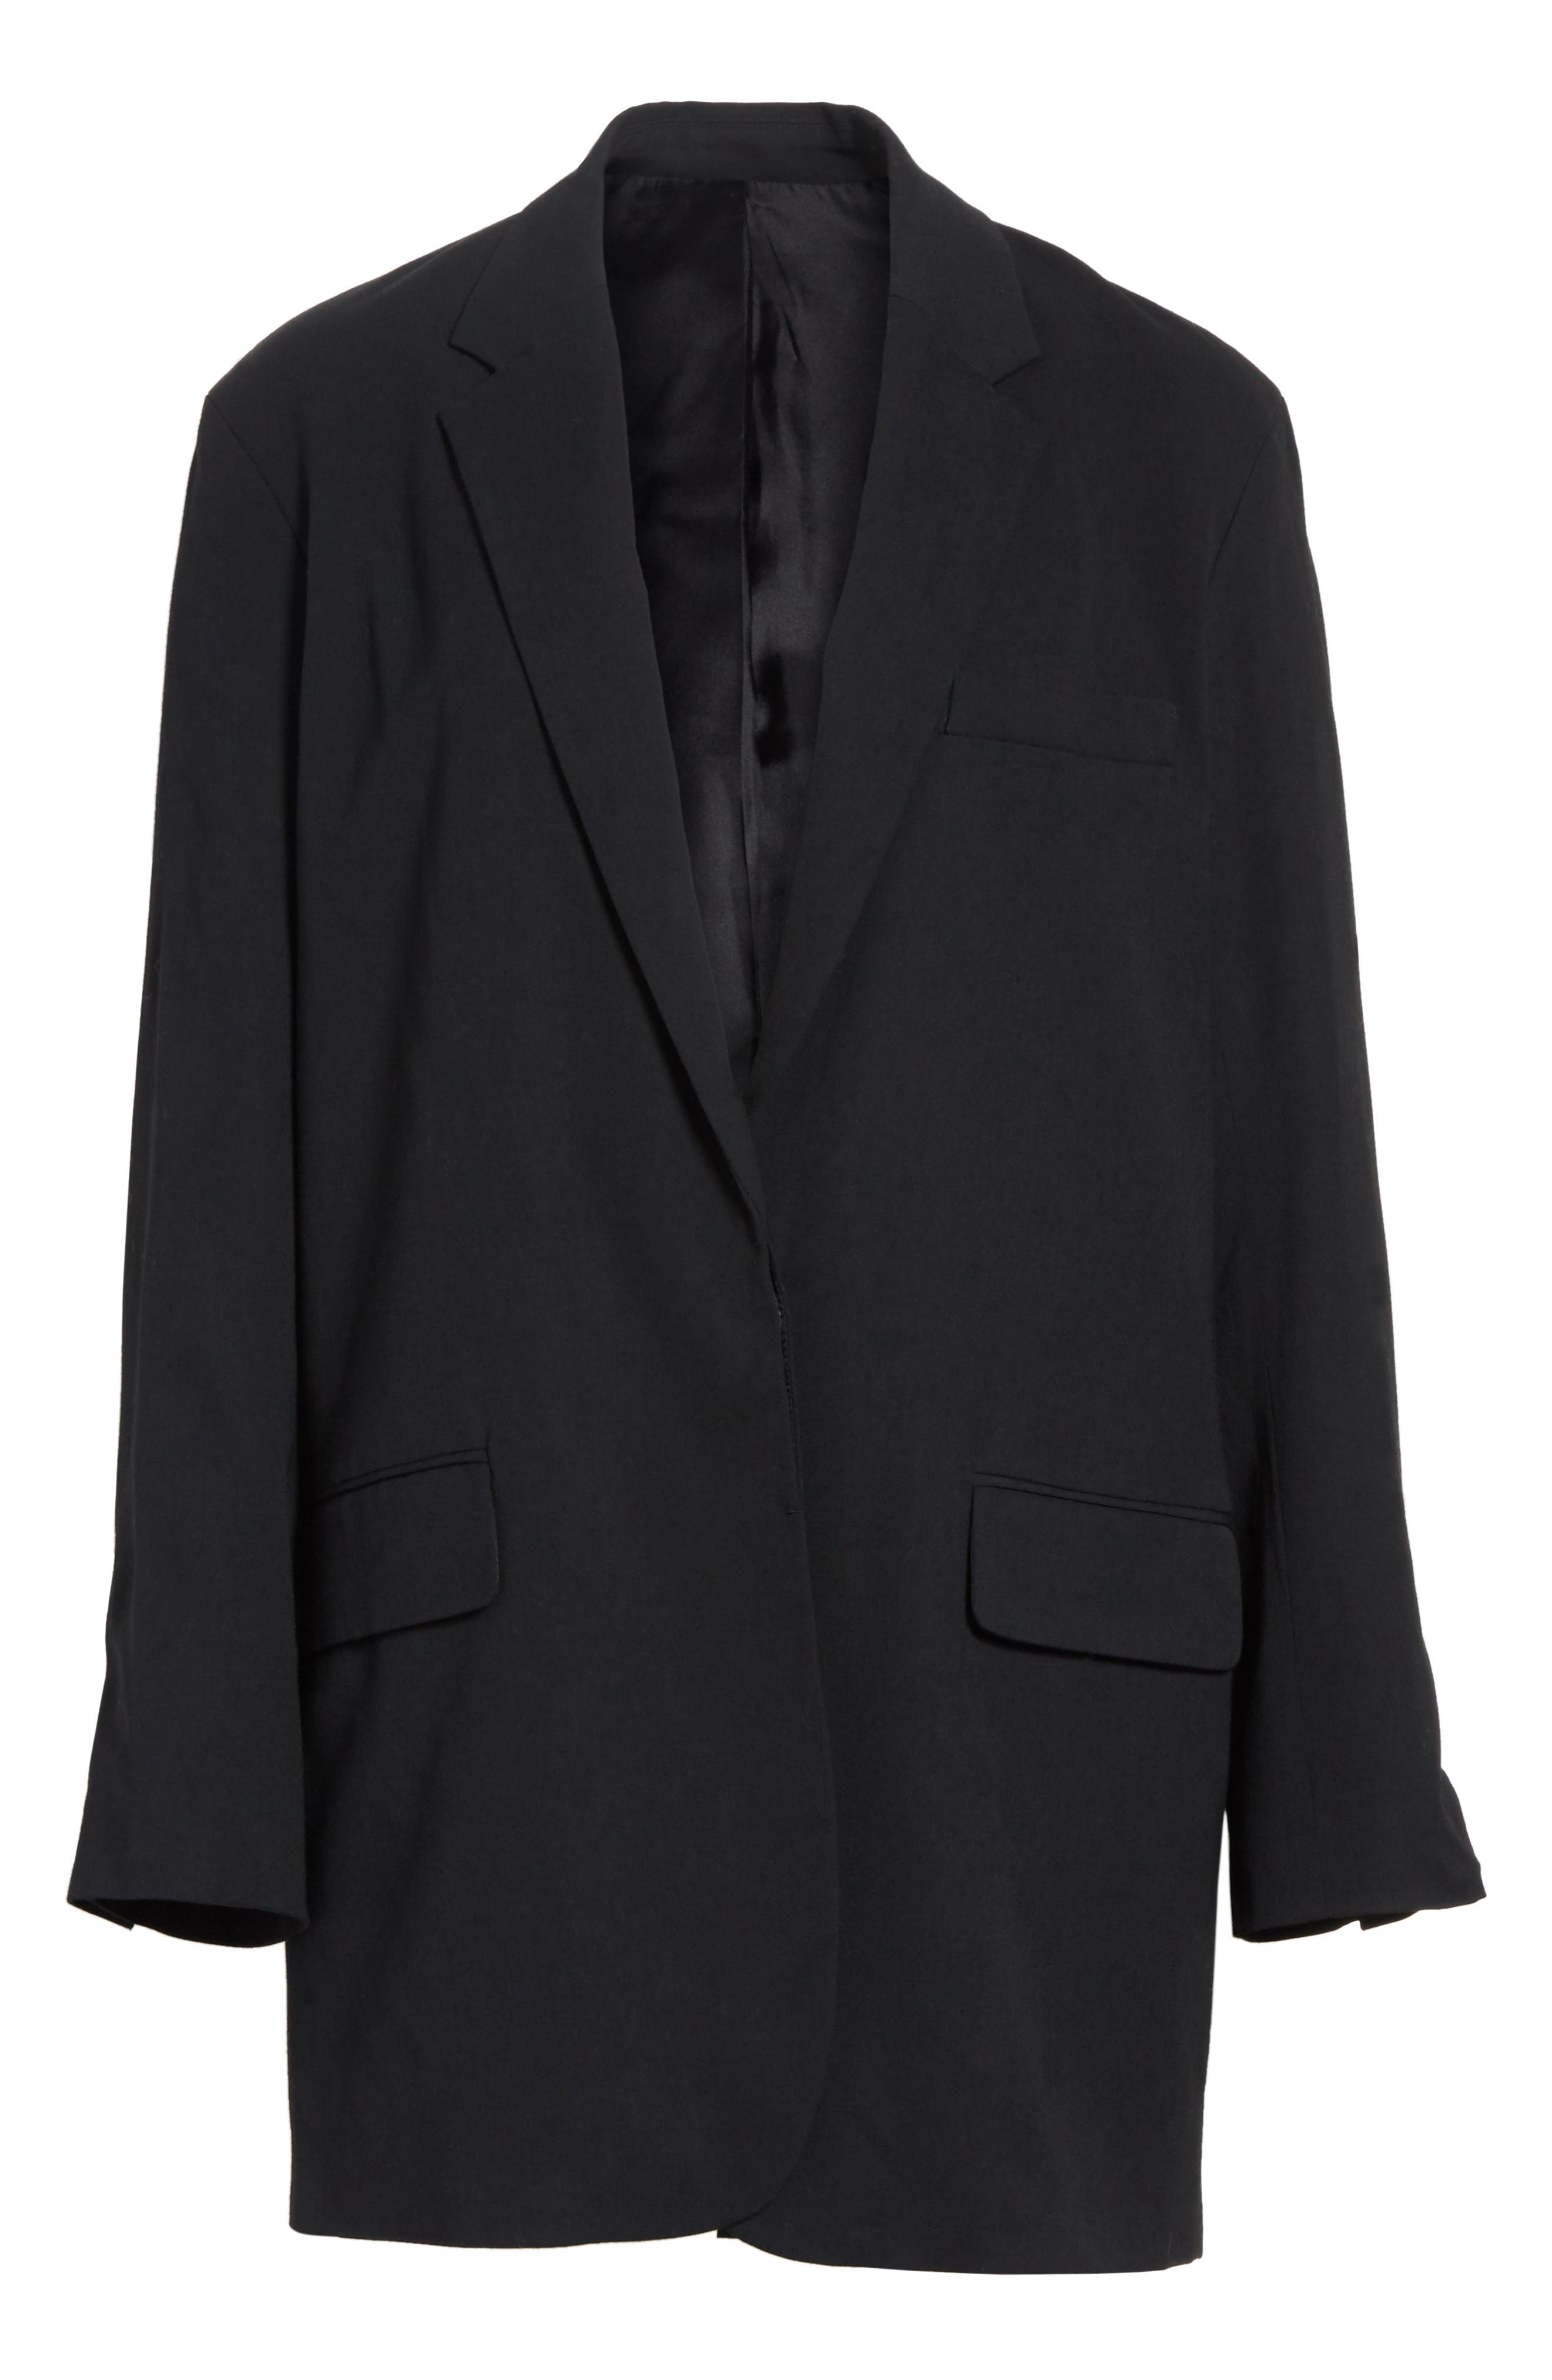 Soft Blazer,                             Alternate thumbnail 6, color,                             Black